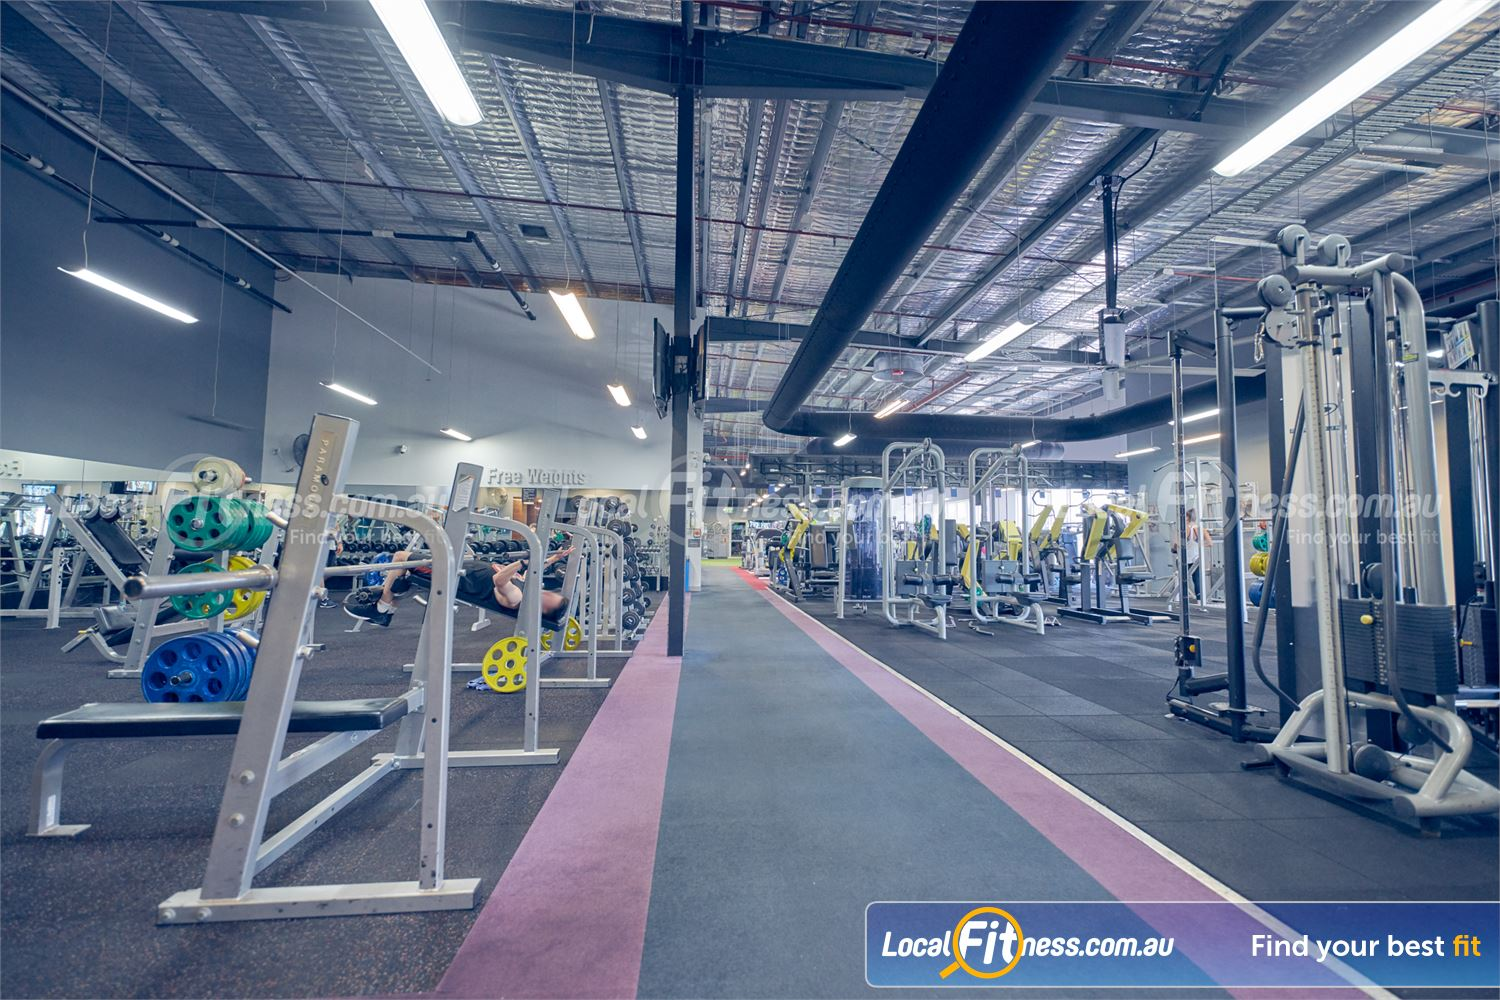 Element Fitness Health Club Nunawading The spacious Nunawading gym catering Mitcham and surrounding suburbs.